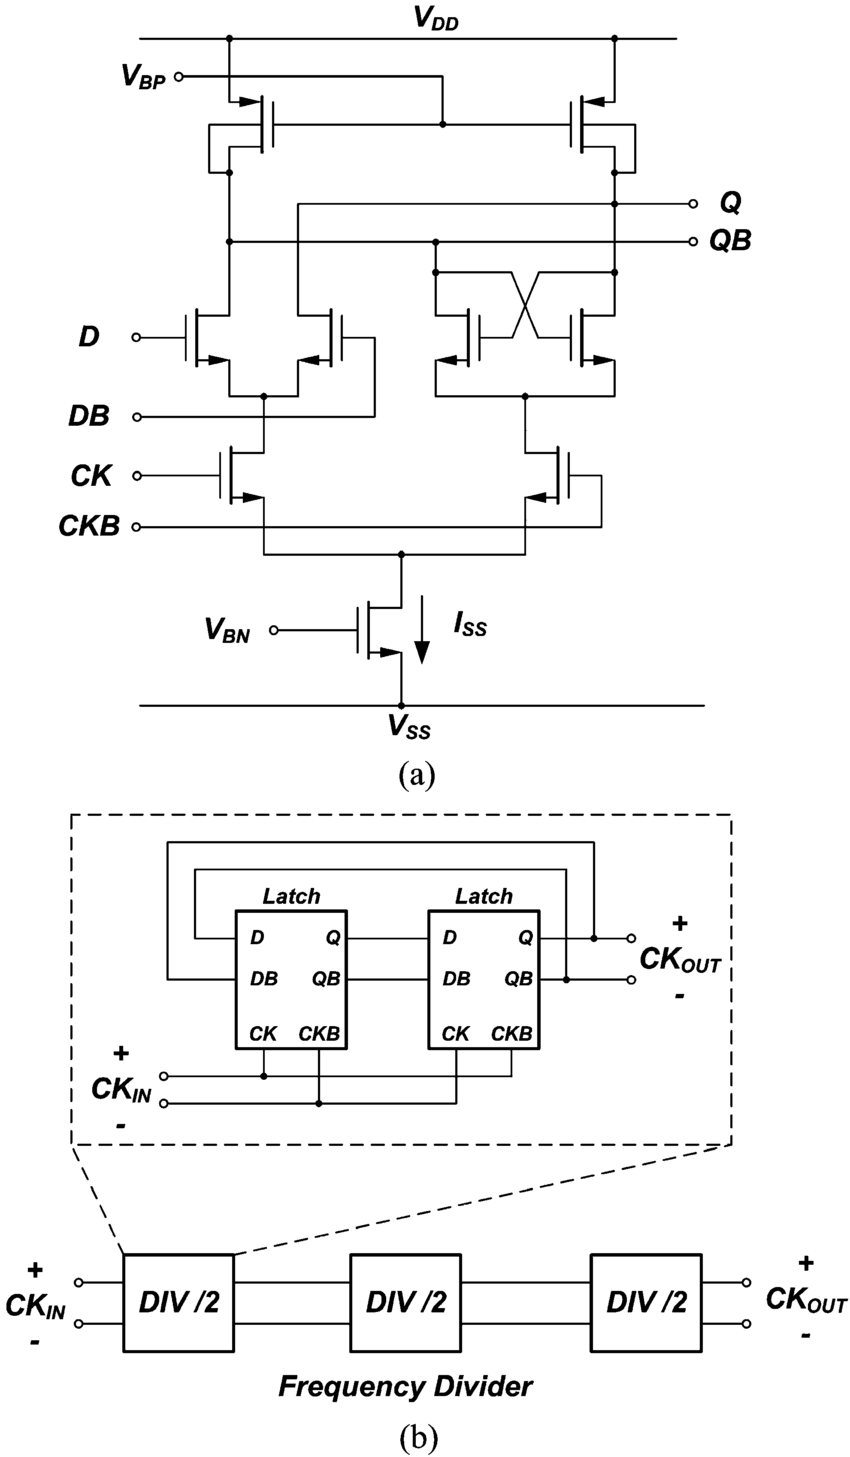 hight resolution of  a stscl latch circuit schematic and b the topology of the